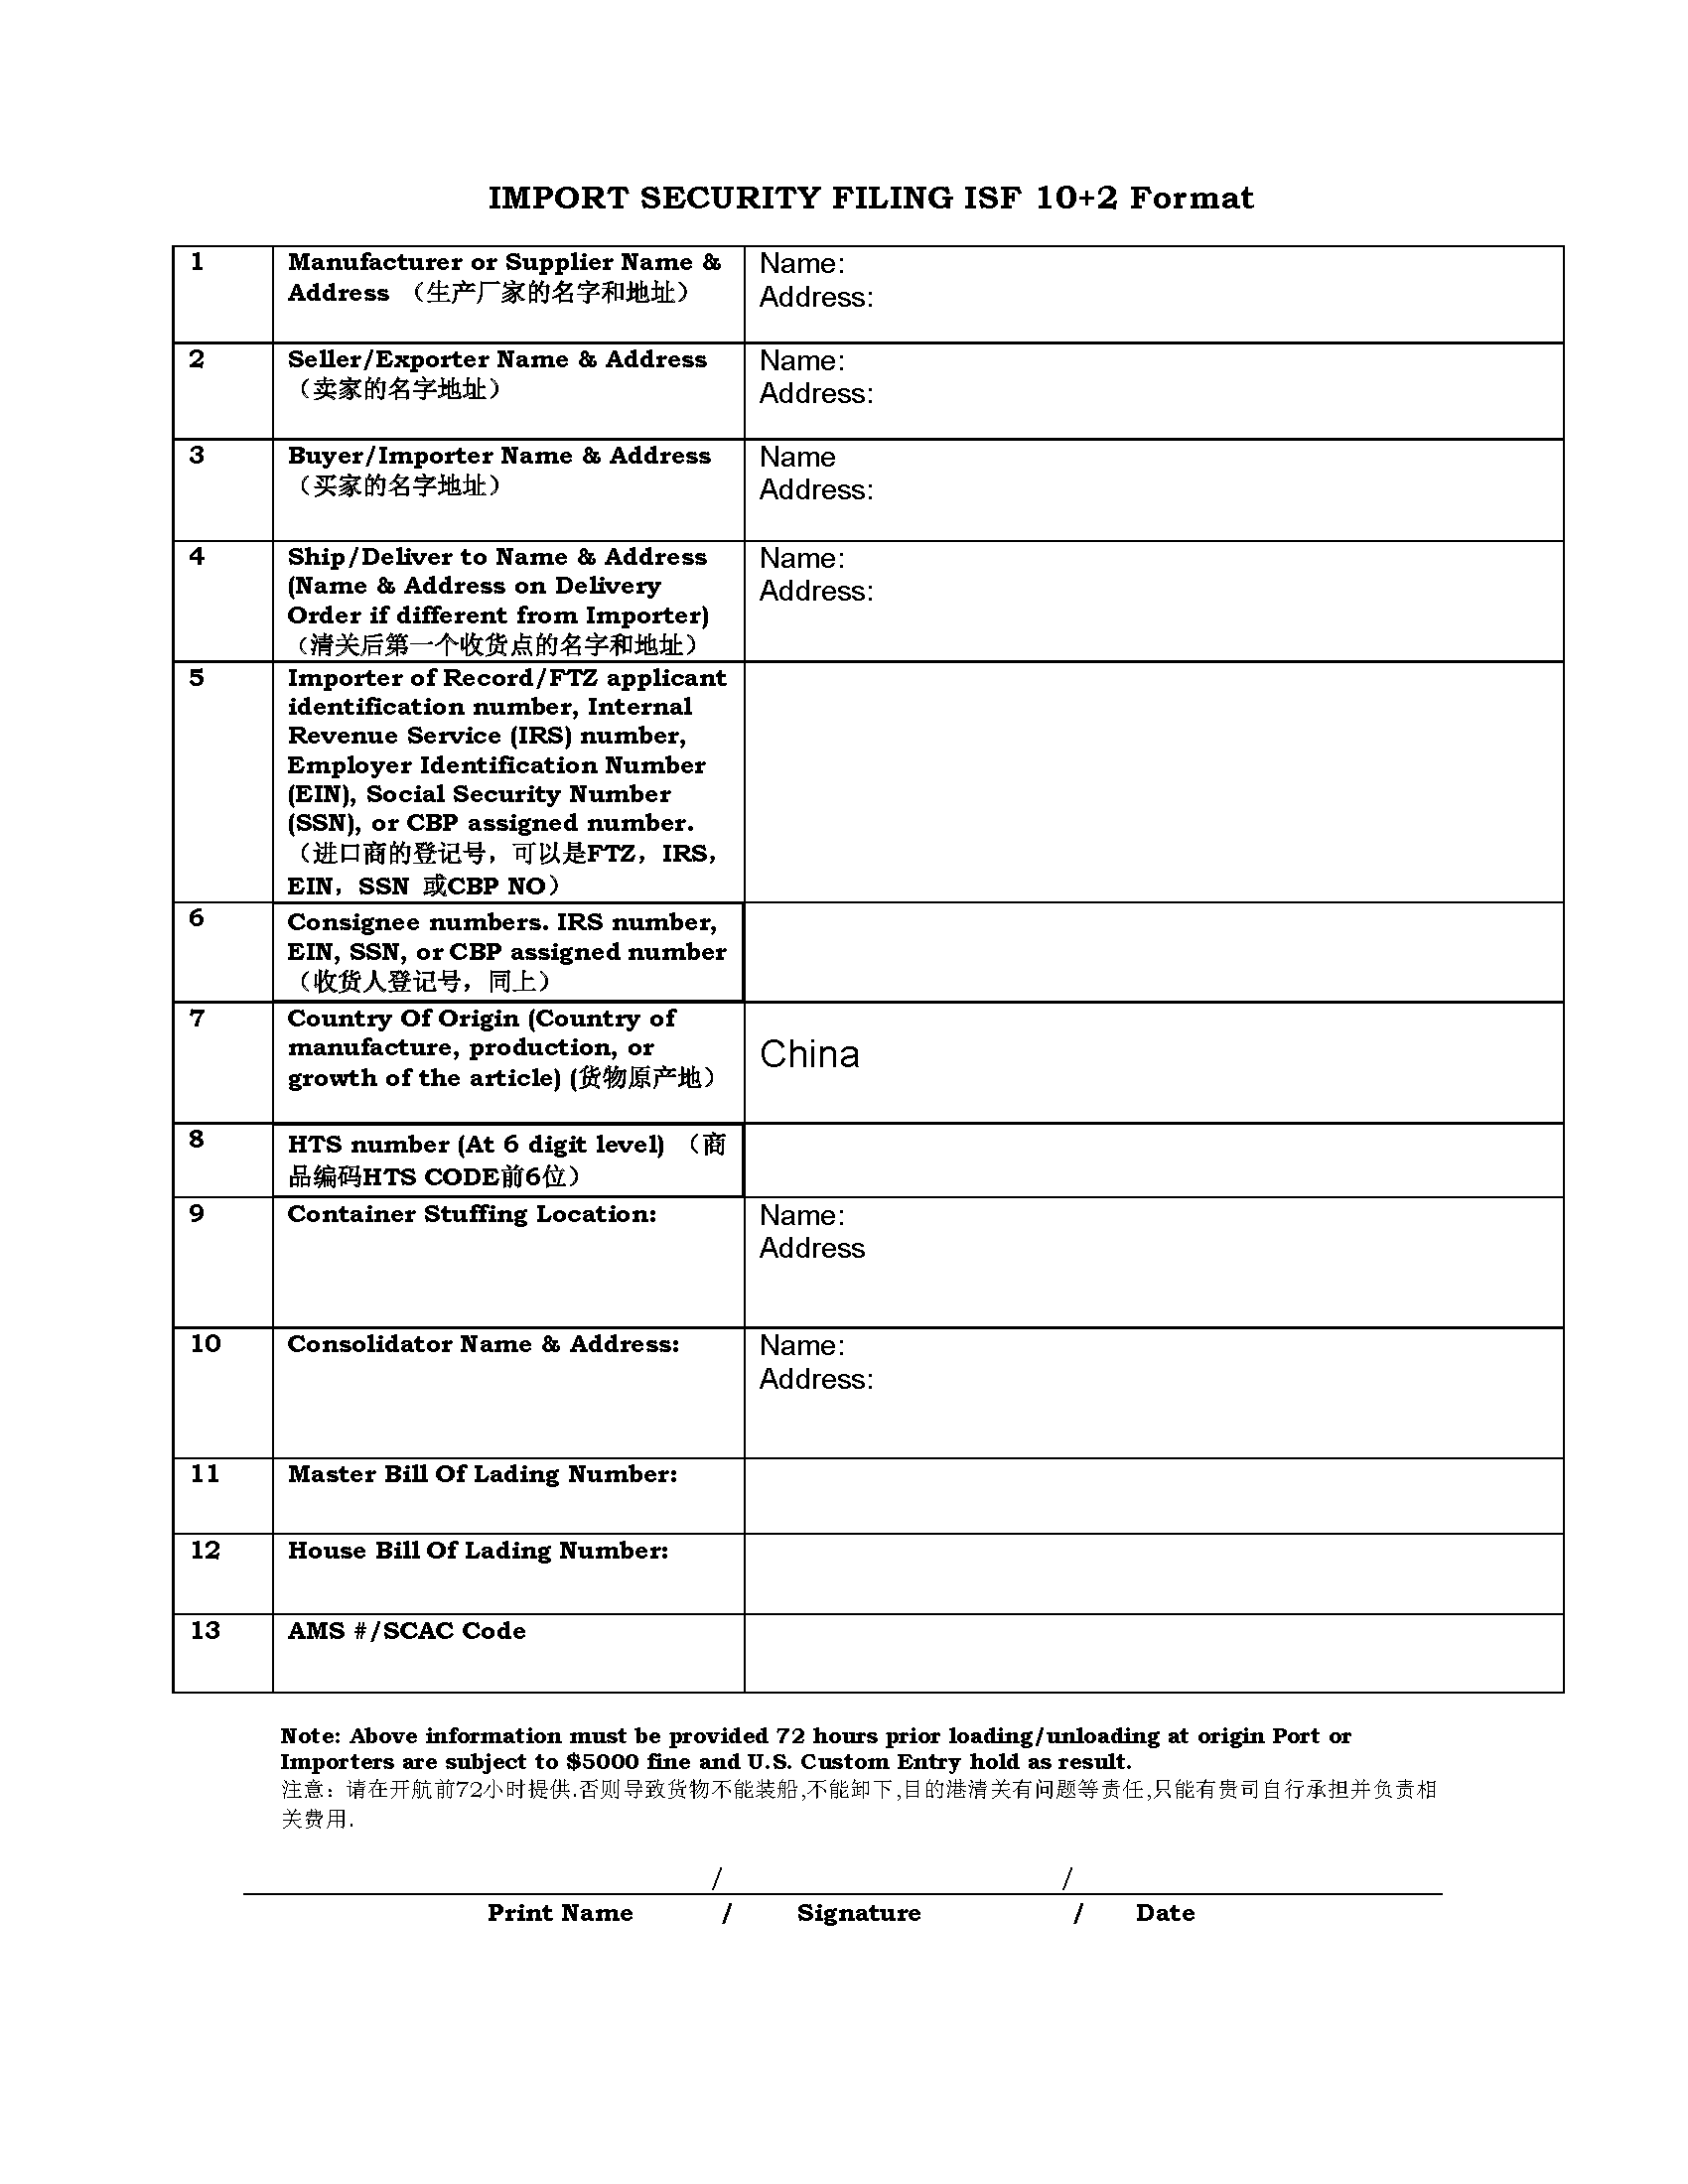 Isf 10+2 Form Excel